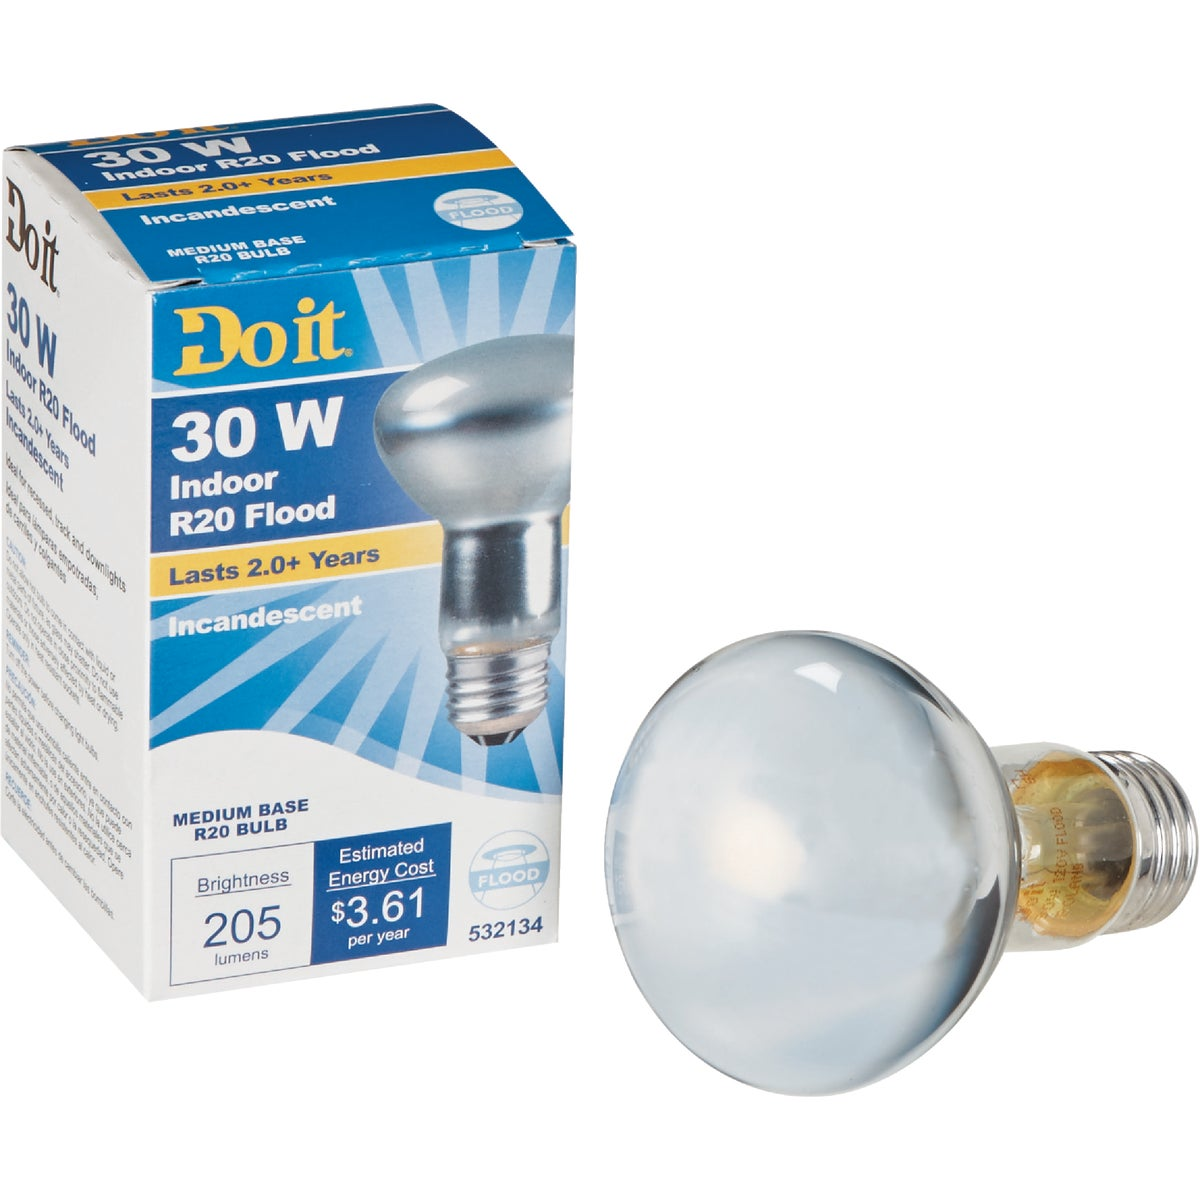 30W REFLECTOR BULB - 18387 30R20-DIB by G E Private Label